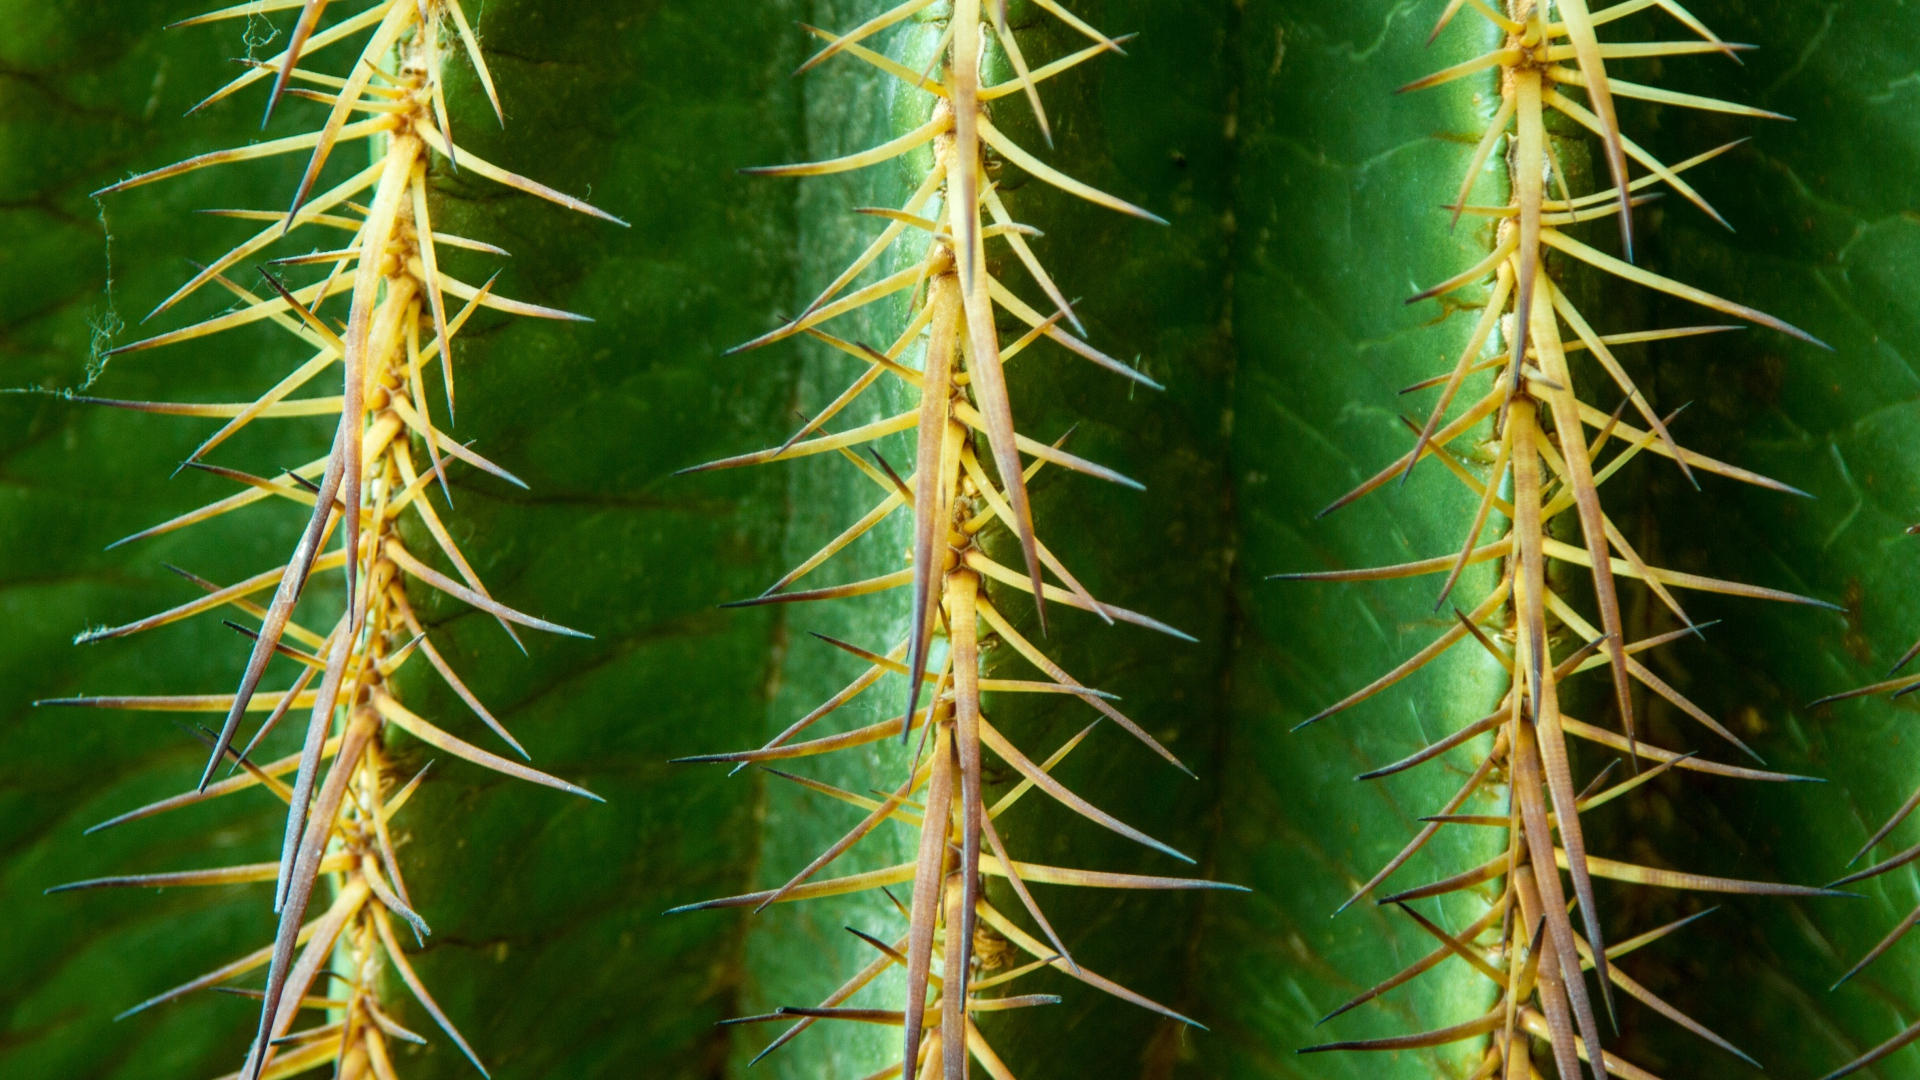 cactus texture desktop wallpaper 51662